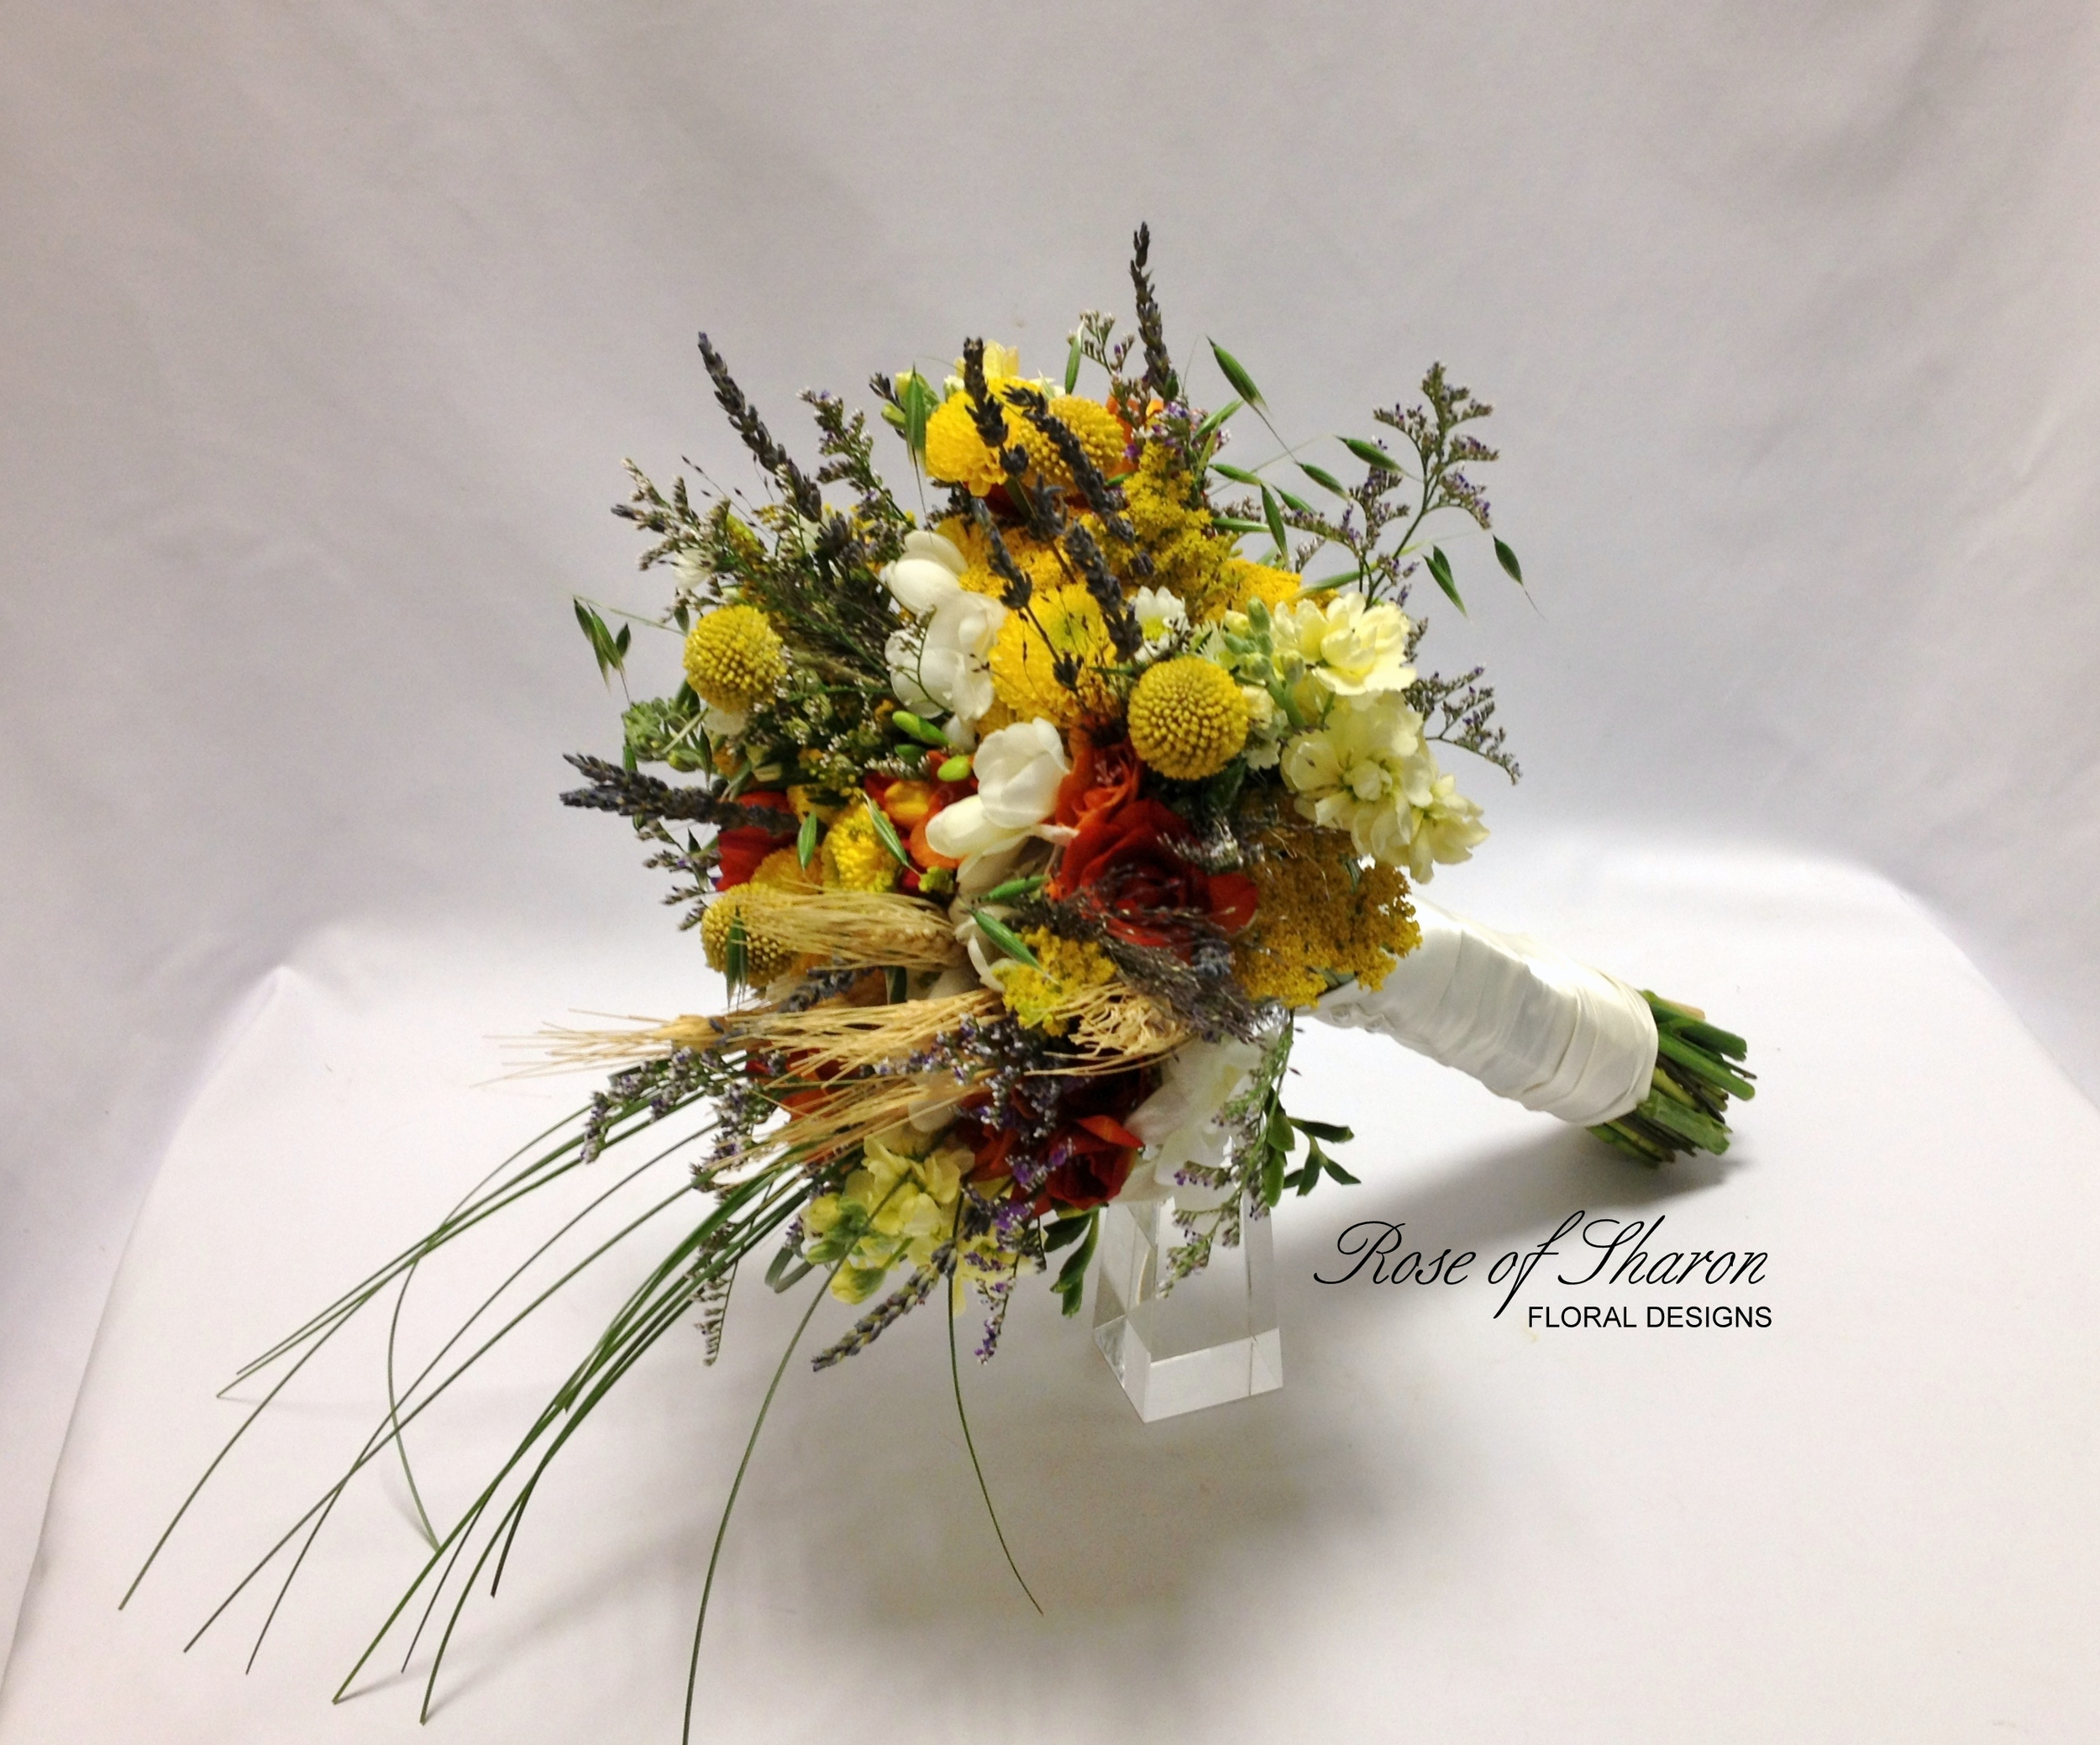 Yellow organic bouquet with mums, grasses & wheat. Rose of Sharon Floral Designs